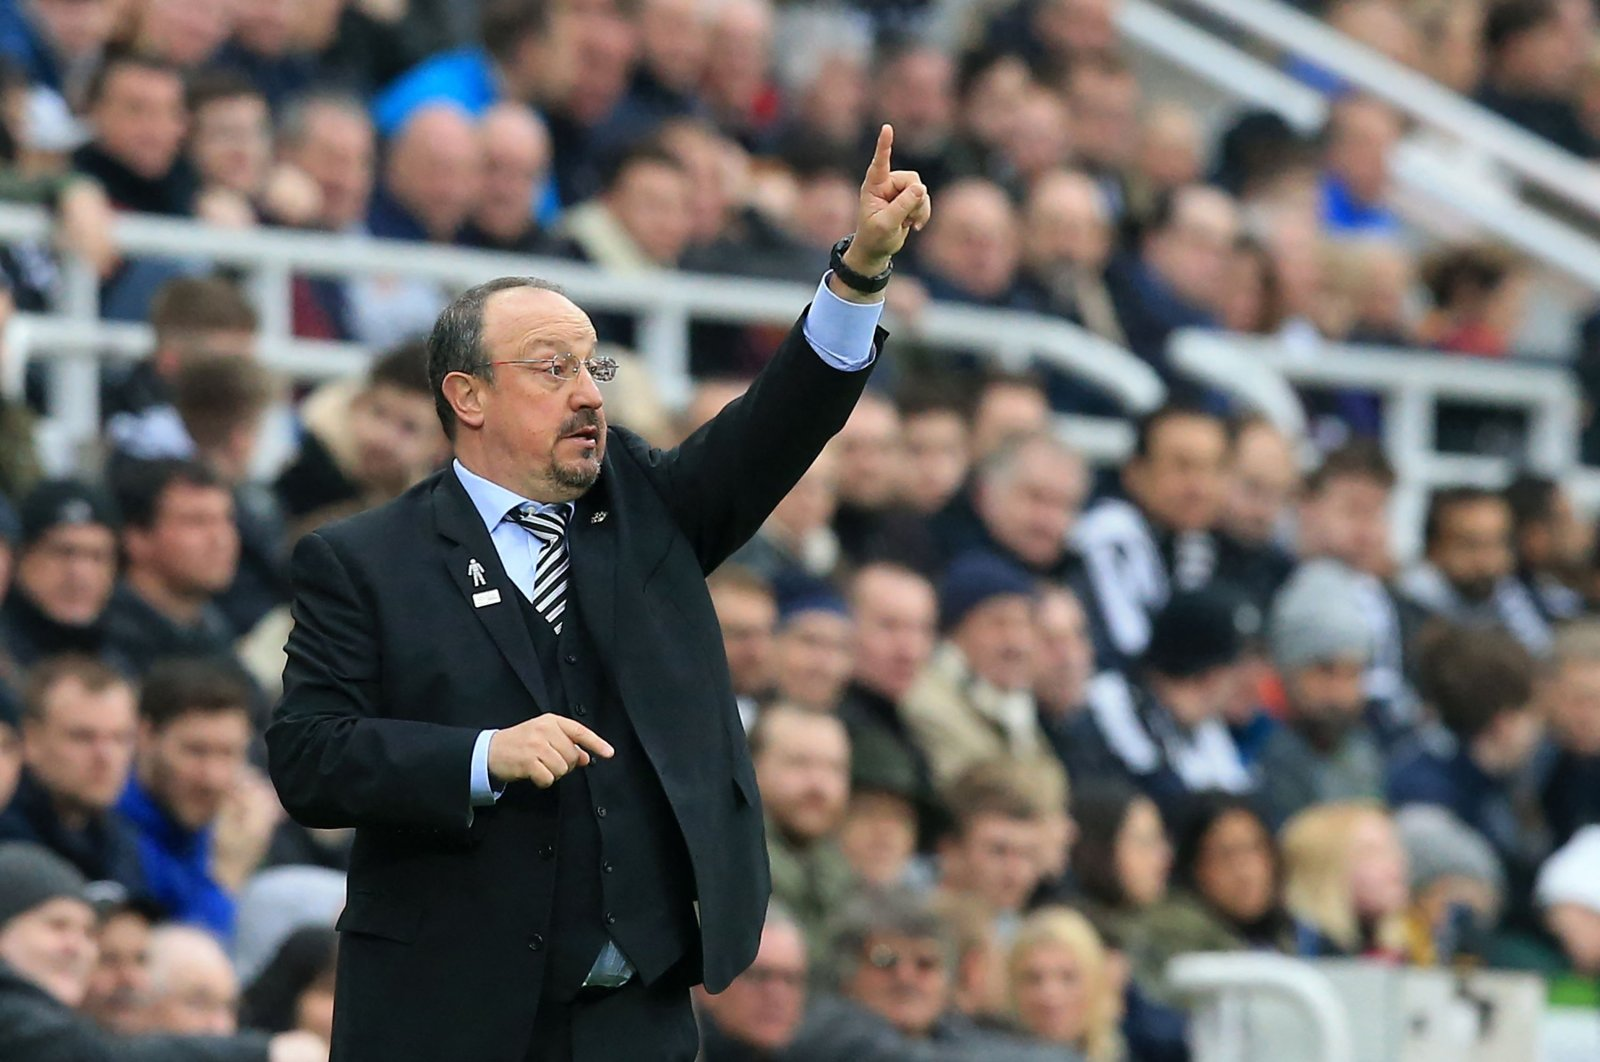 Then Newscastle United manager Rafael Benitez gestures during a Premier League match against Crystal Palace at St. James' Park, in Newcastle upon Tyne, England, April 6, 2019. (AFP Photo)